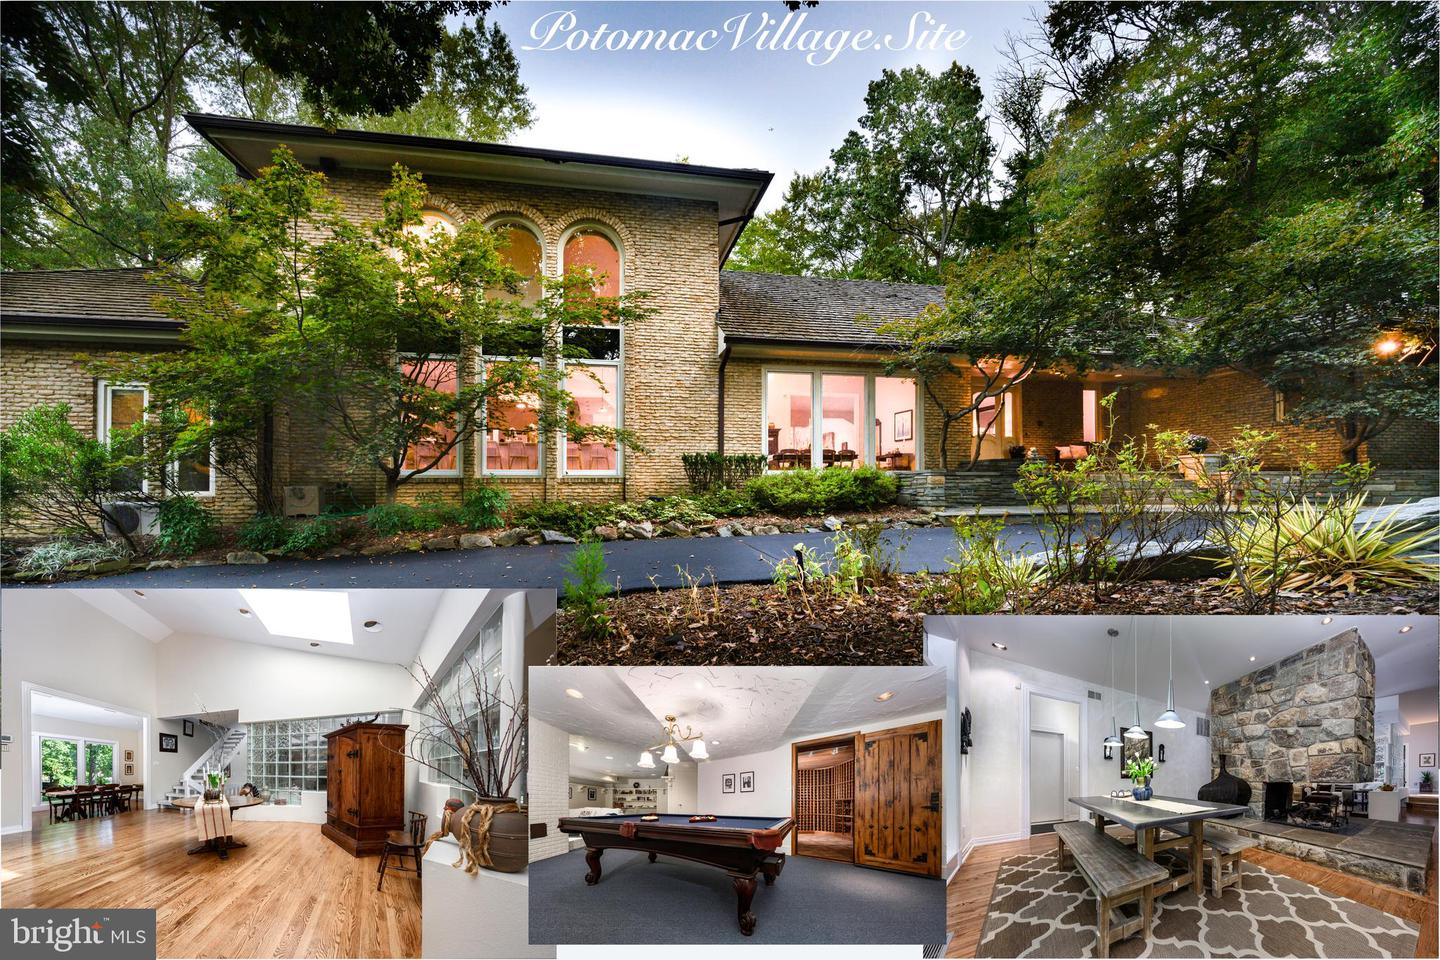 9612 HALTER COURT, POTOMAC, Maryland